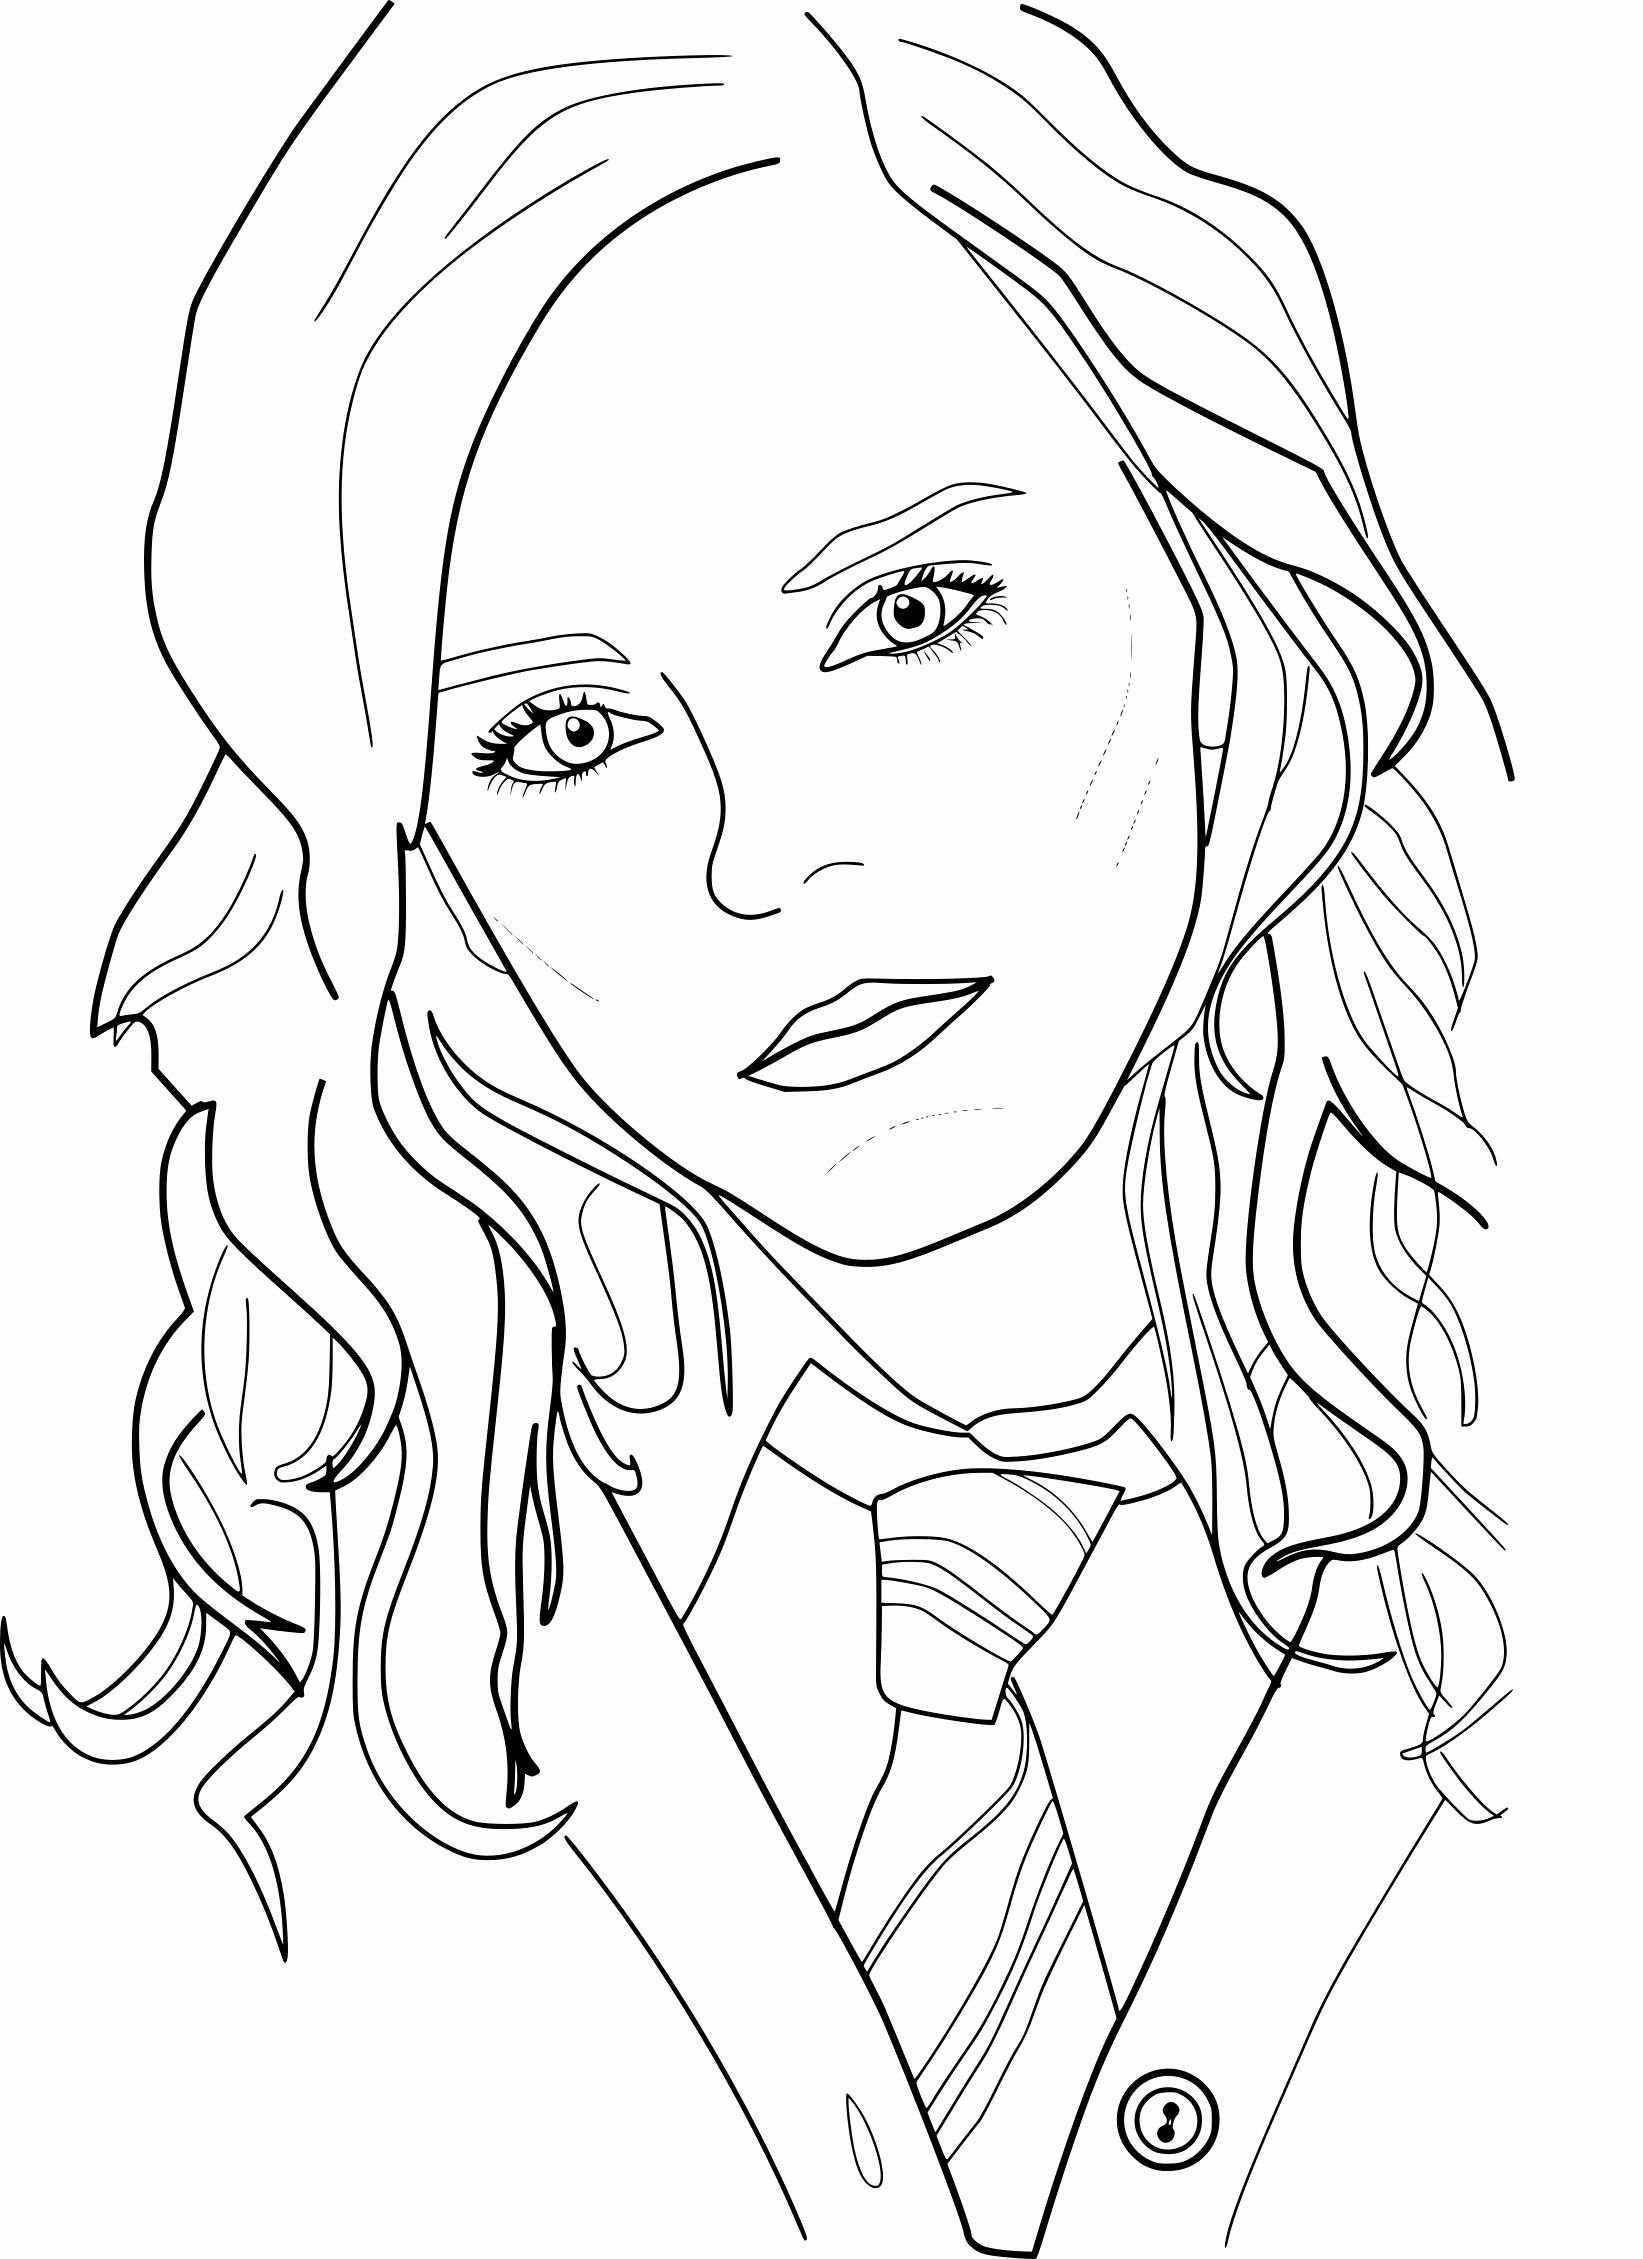 Harry Potter Coloring Pages For Kids In 2020 Harry Potter Coloring Pages Harry Potter Colors Coloring Books